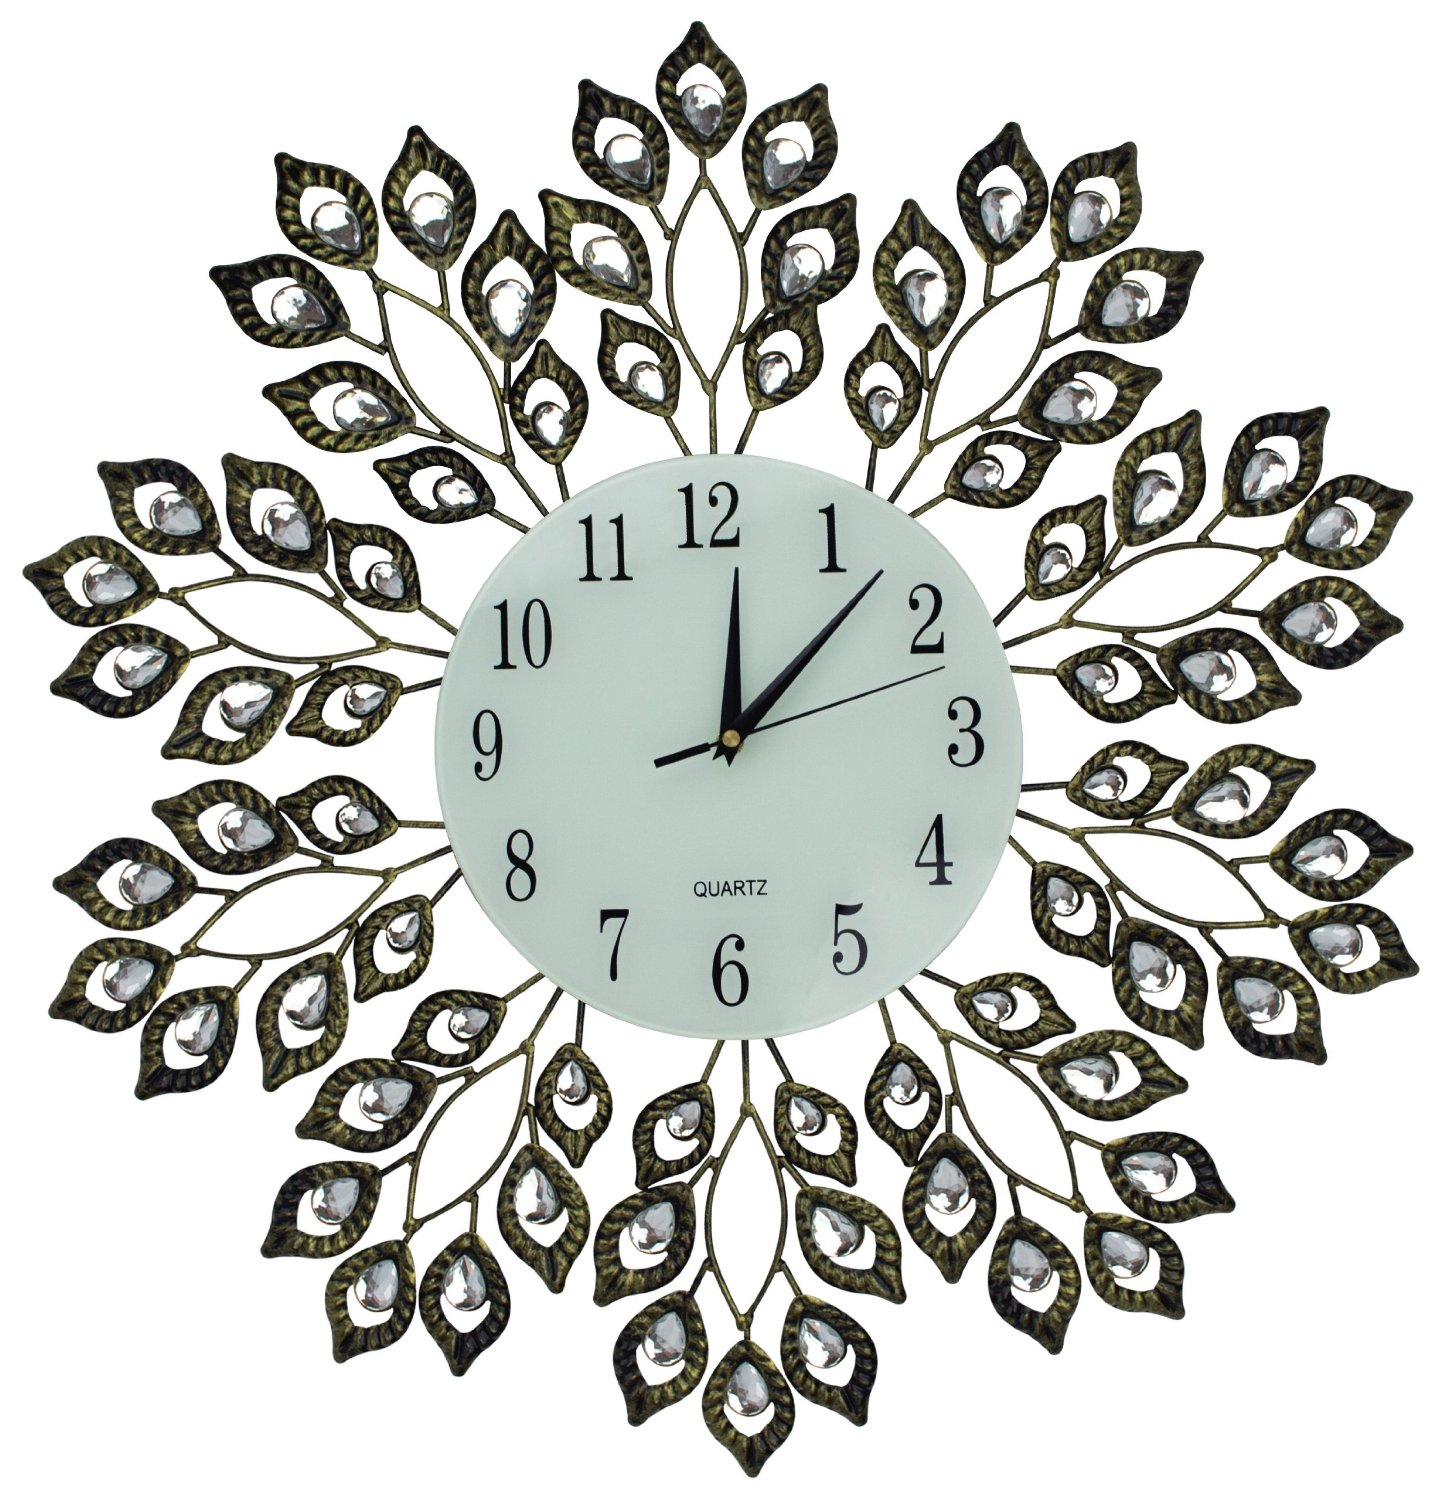 "Lulu Decor, 25"" Antique Metal Wall Clock, 9"" White Glass Dial with Arabic Numbers, Decorative Clock for Living Room, Bedroom, Office Space"